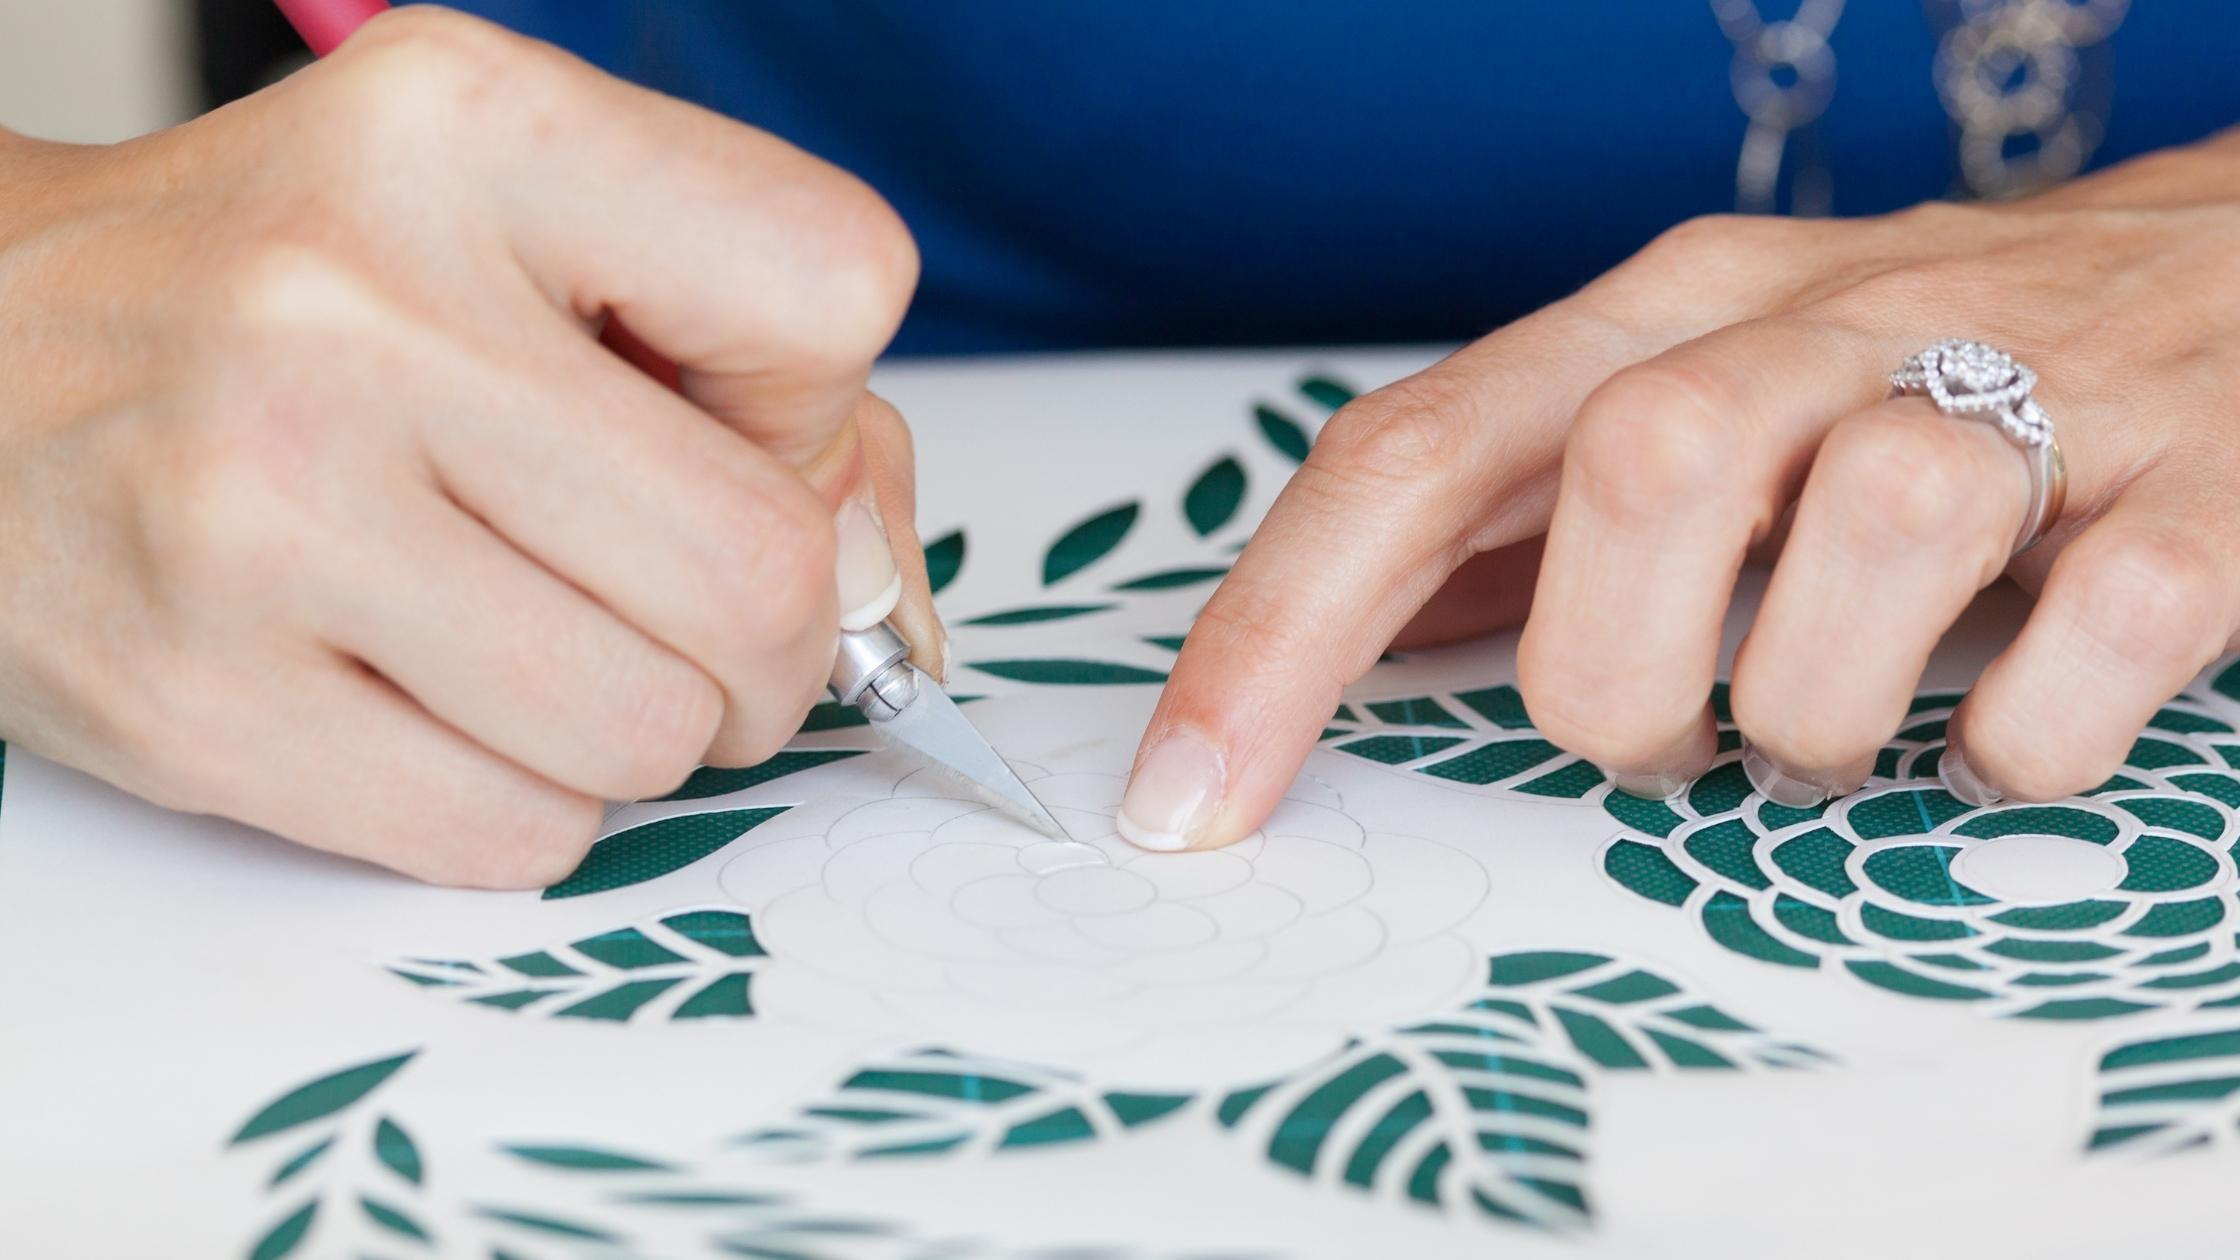 woman cutting a floral design on tracing paper